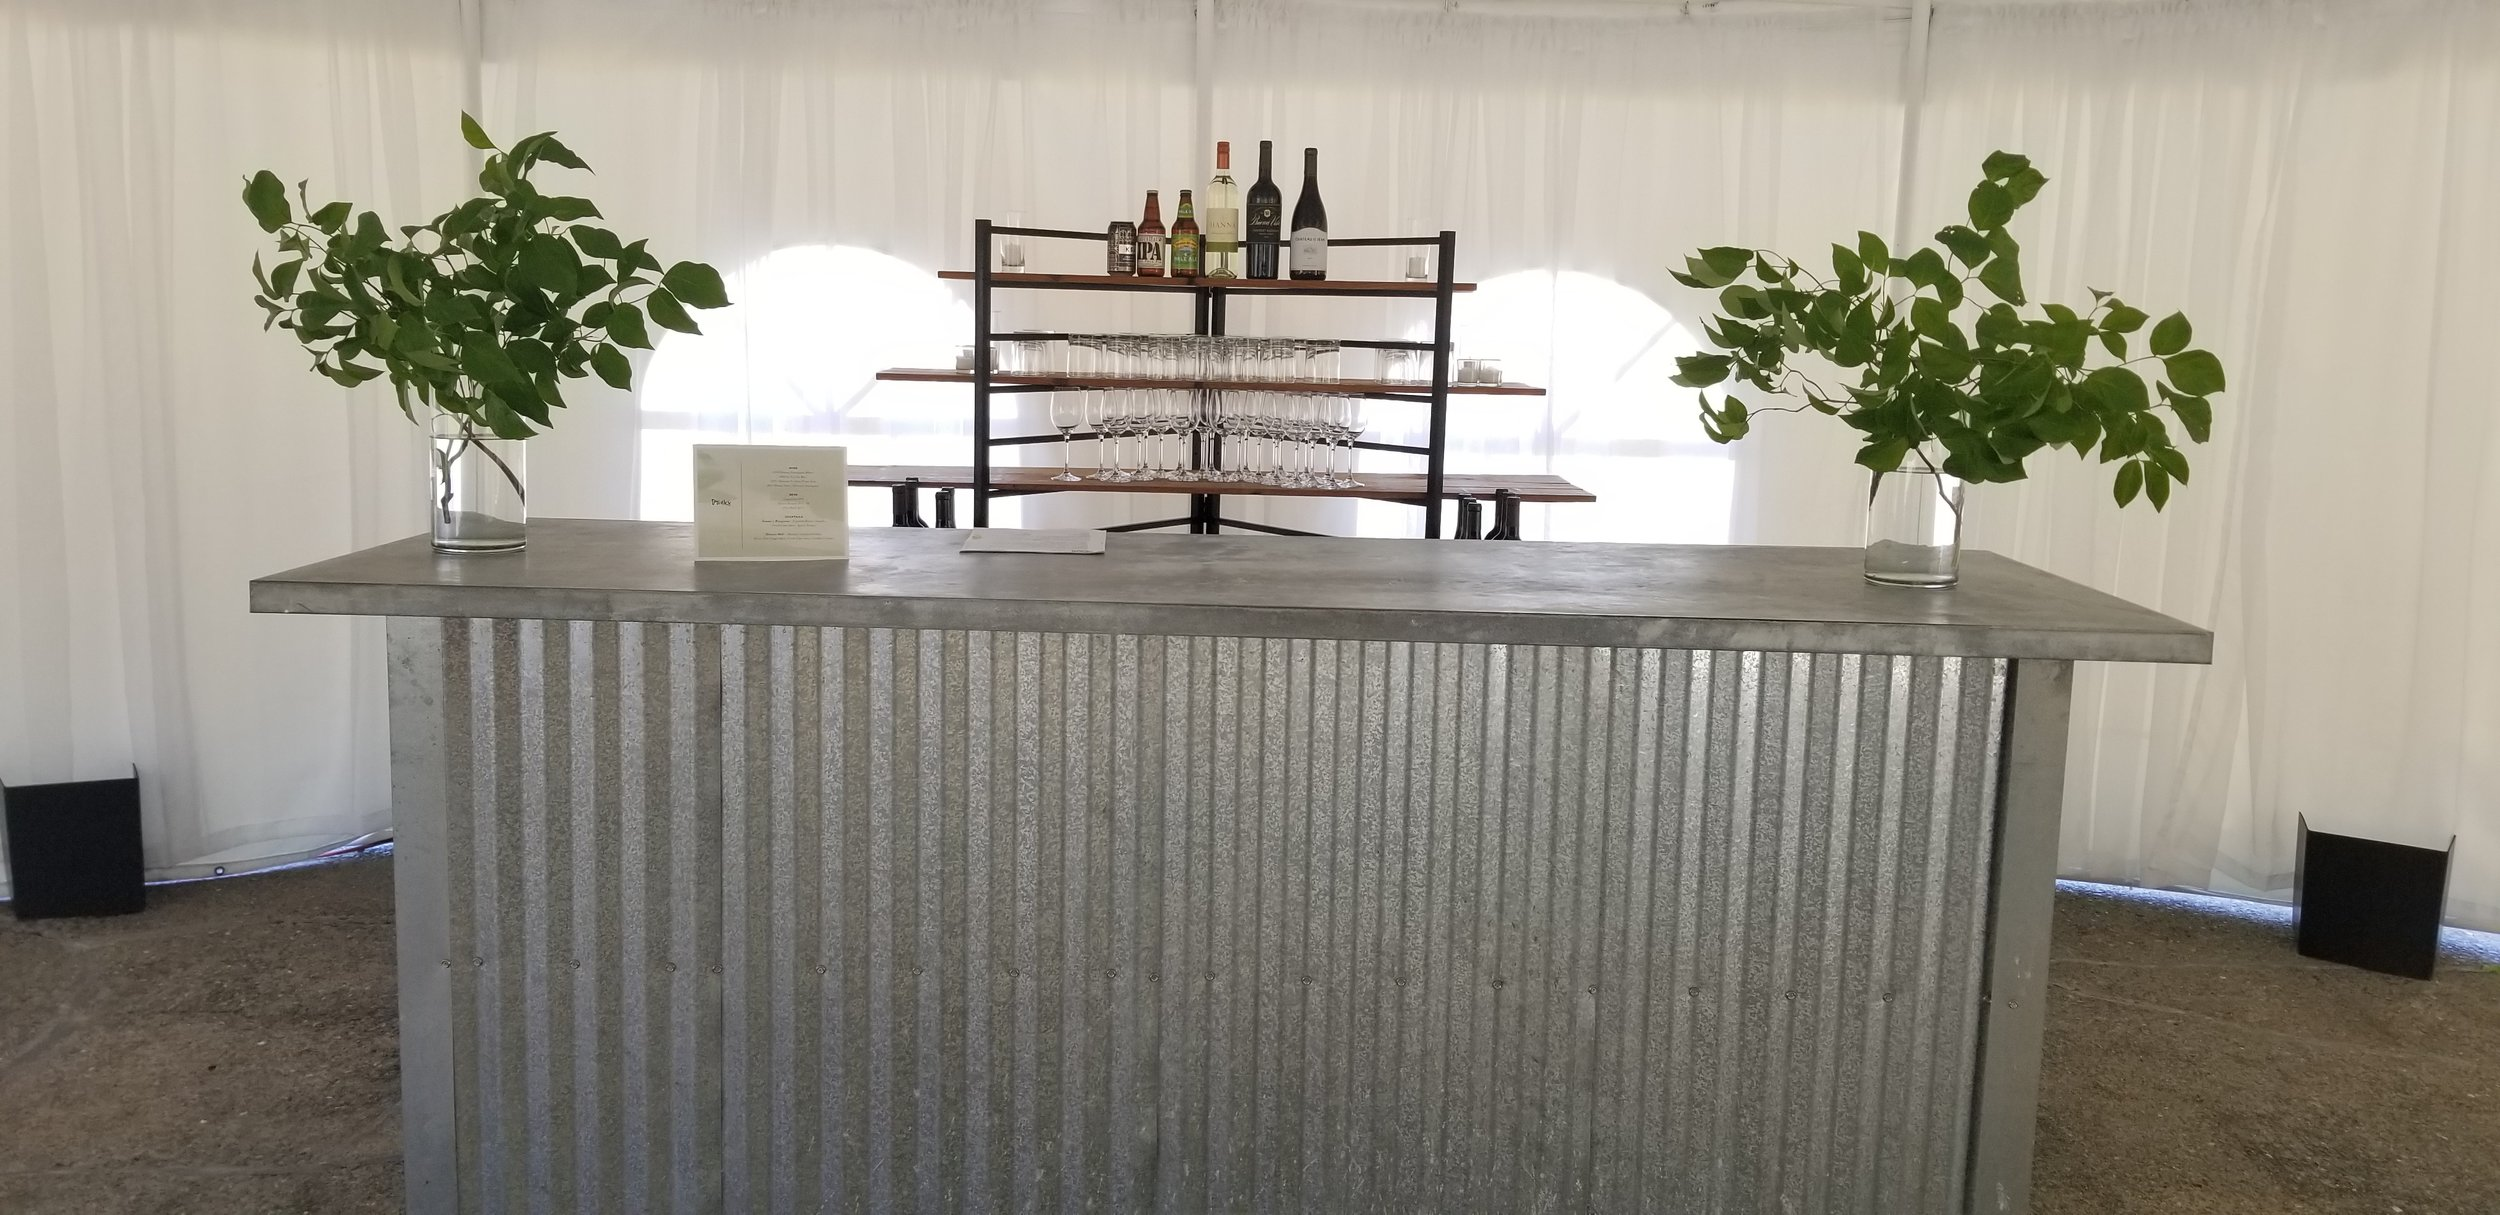 Rustic country tin bar featuring the simplicity of dogwood branches placed in clear glass urns.